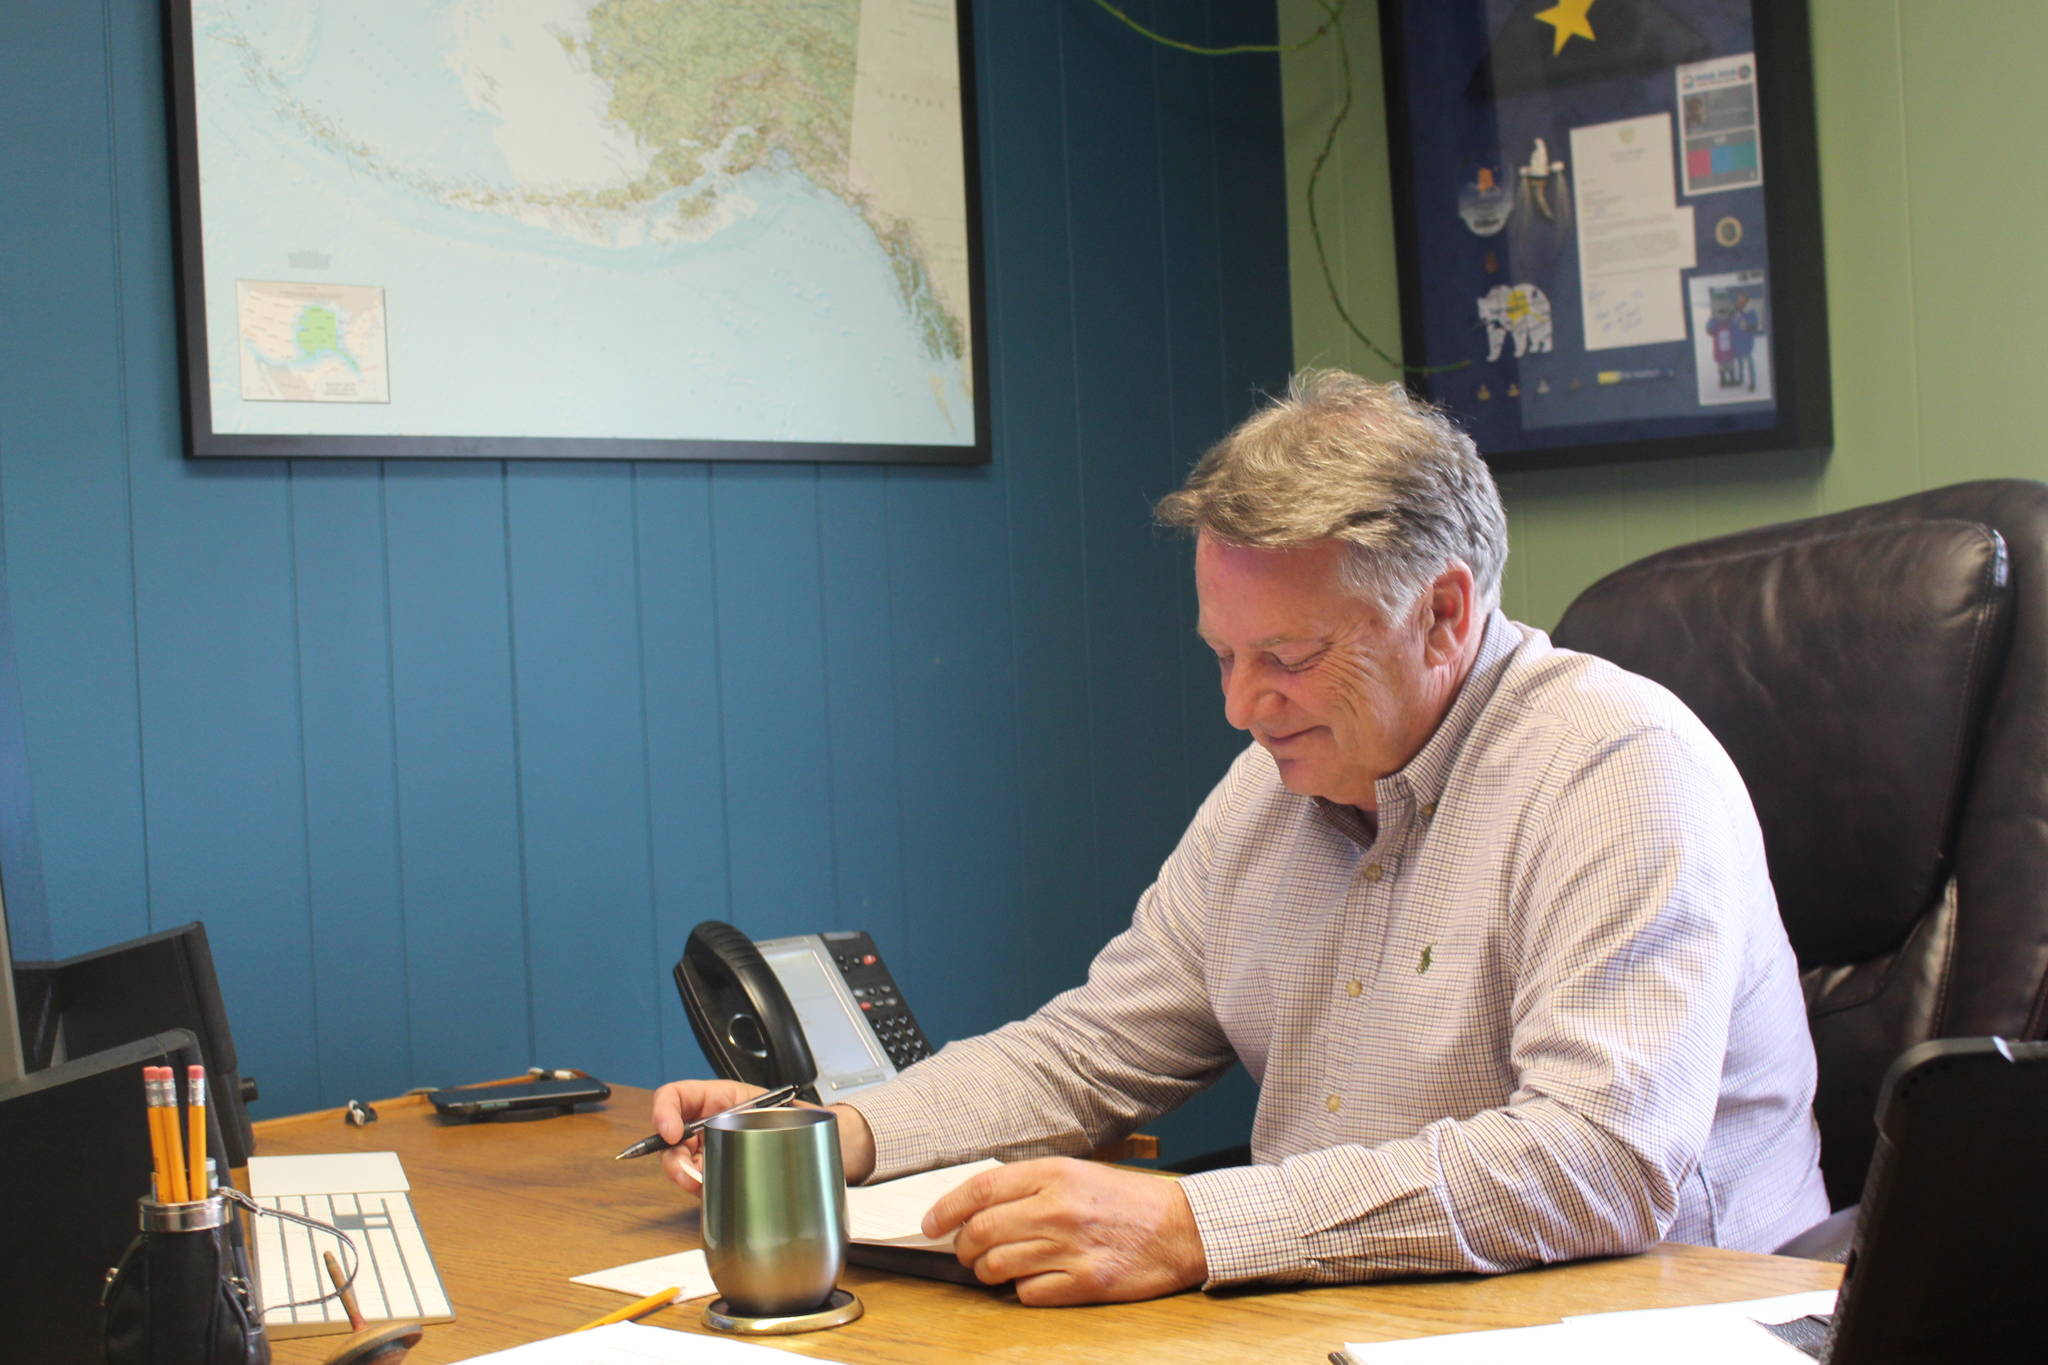 Tim Dillon, executive director of the Kenai Peninsula Economic Development District, is seen here reviewing his proposed changes to the Alaska Legislature regarding the AK CARES funds for small businesses at the KPEDD office in Kenai, Alaska, on July 1, 2020. (Photo by Brian Mazurek/Peninsula Clarion)